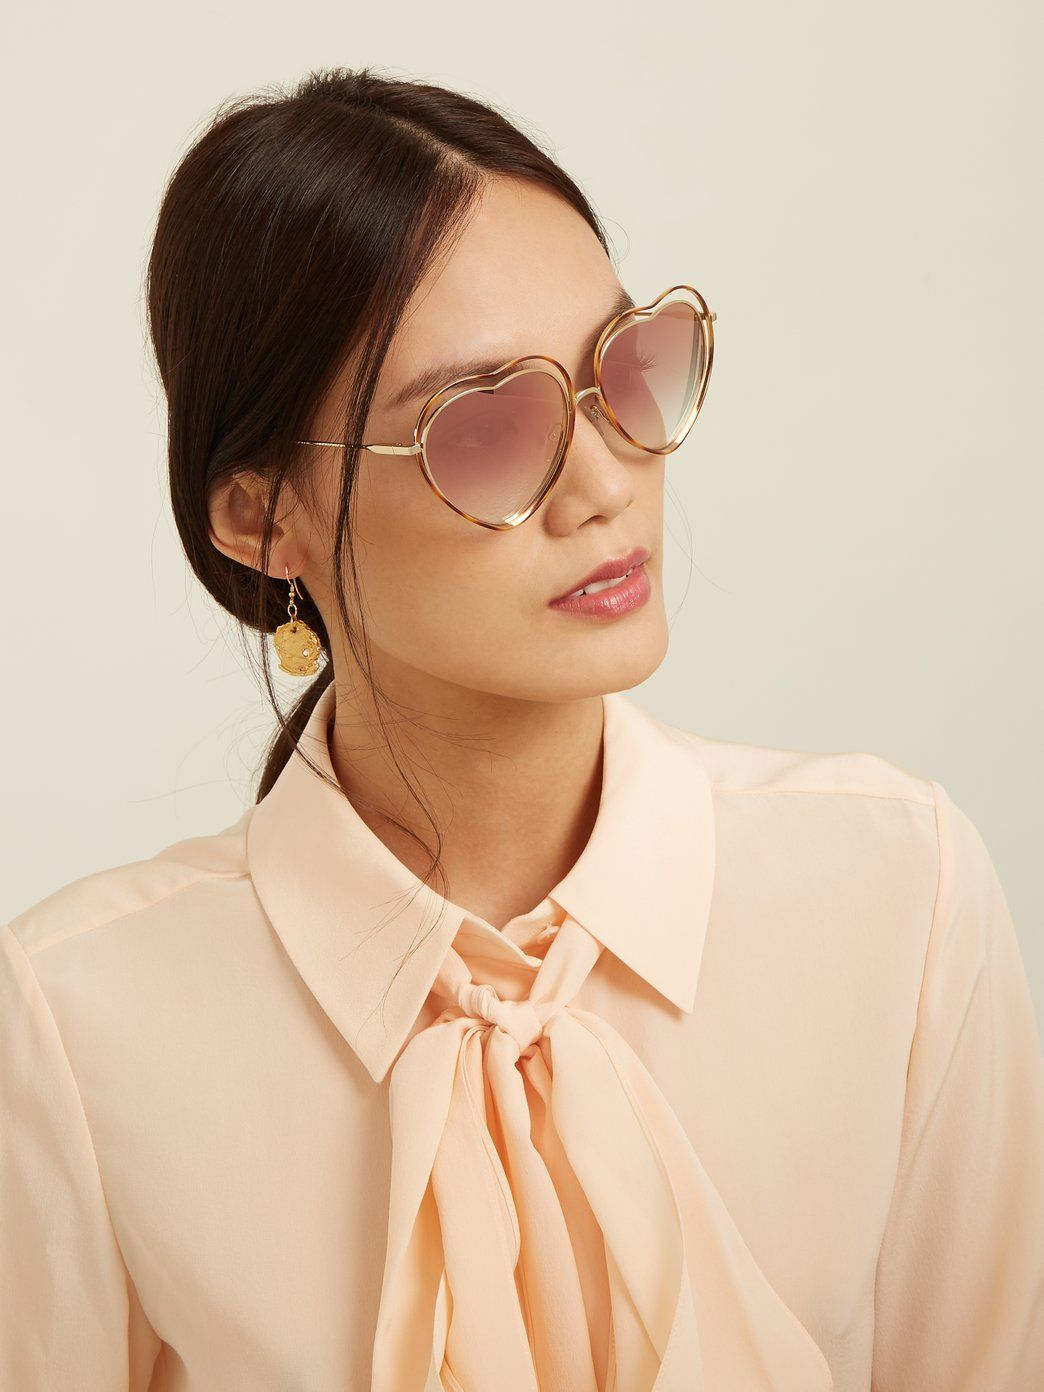 Pin By Rebecamc On Fashion In 2020 Heart Shaped Frame Heart Shaped Sunglasses Sunglass Frames